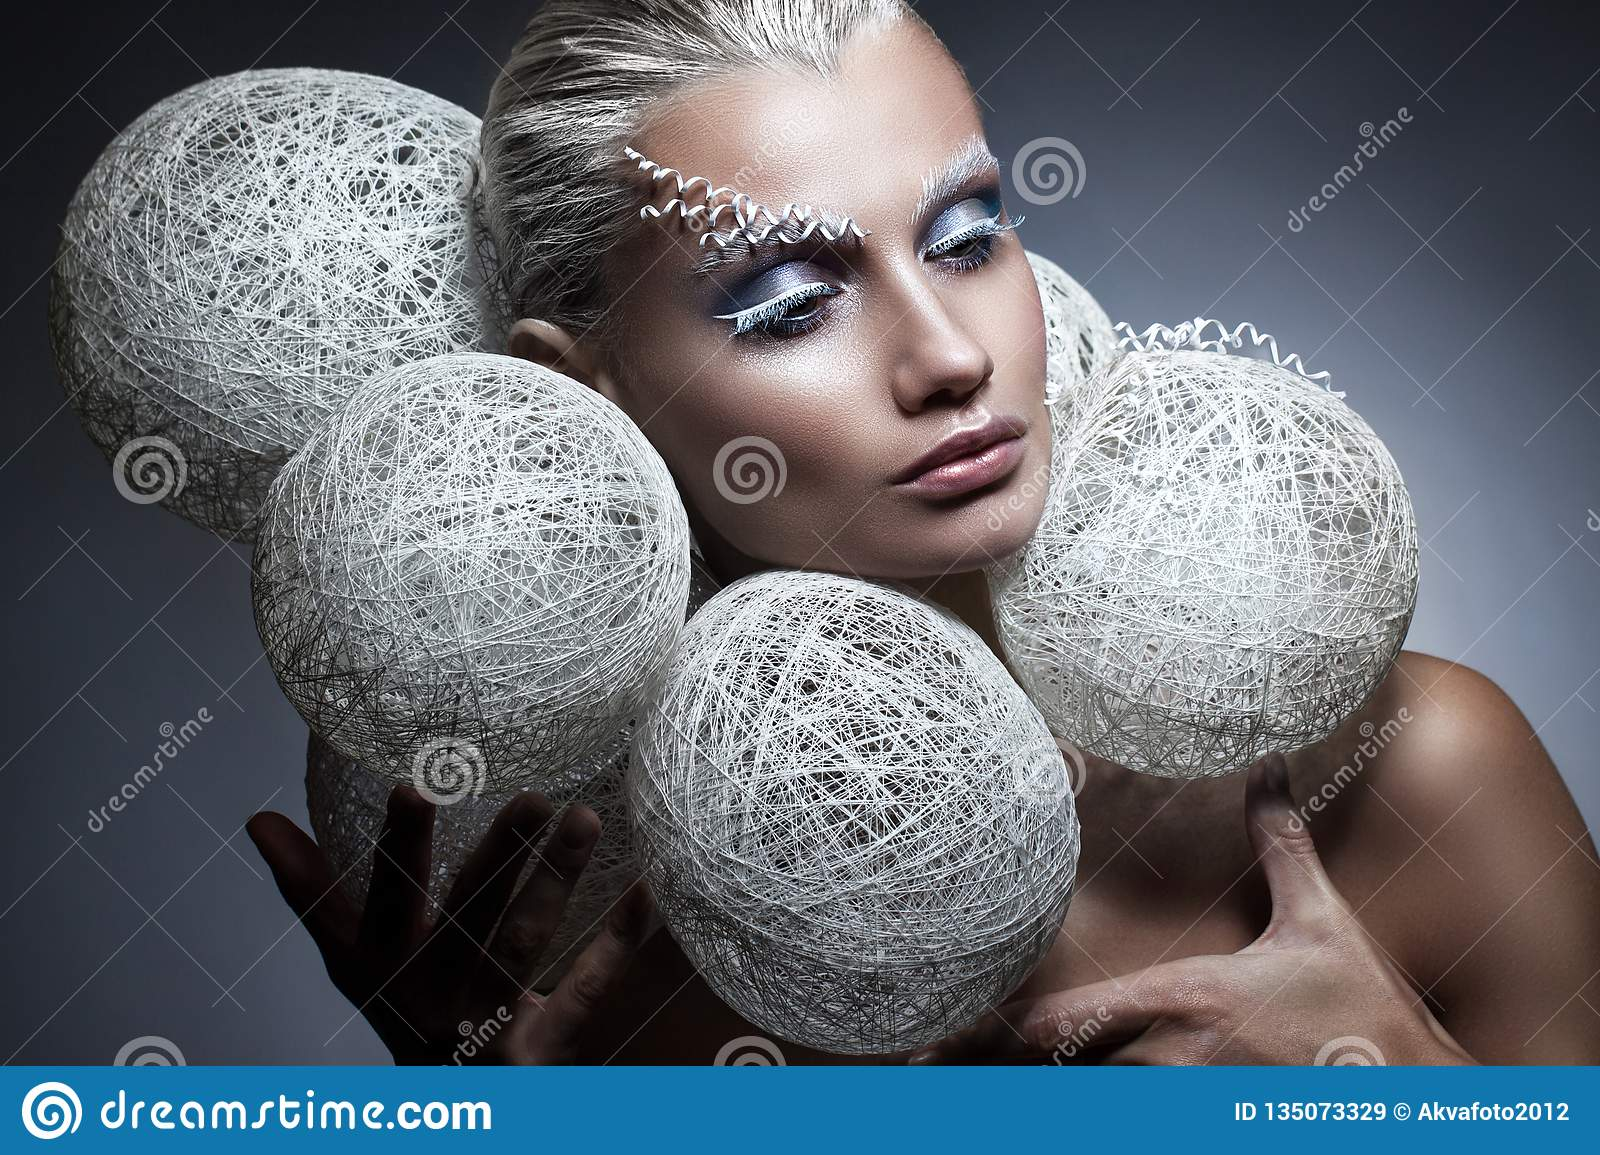 Beauty fashion portrait of a beautiful woman with creative makeup on her face. White braided balls around the head of the model